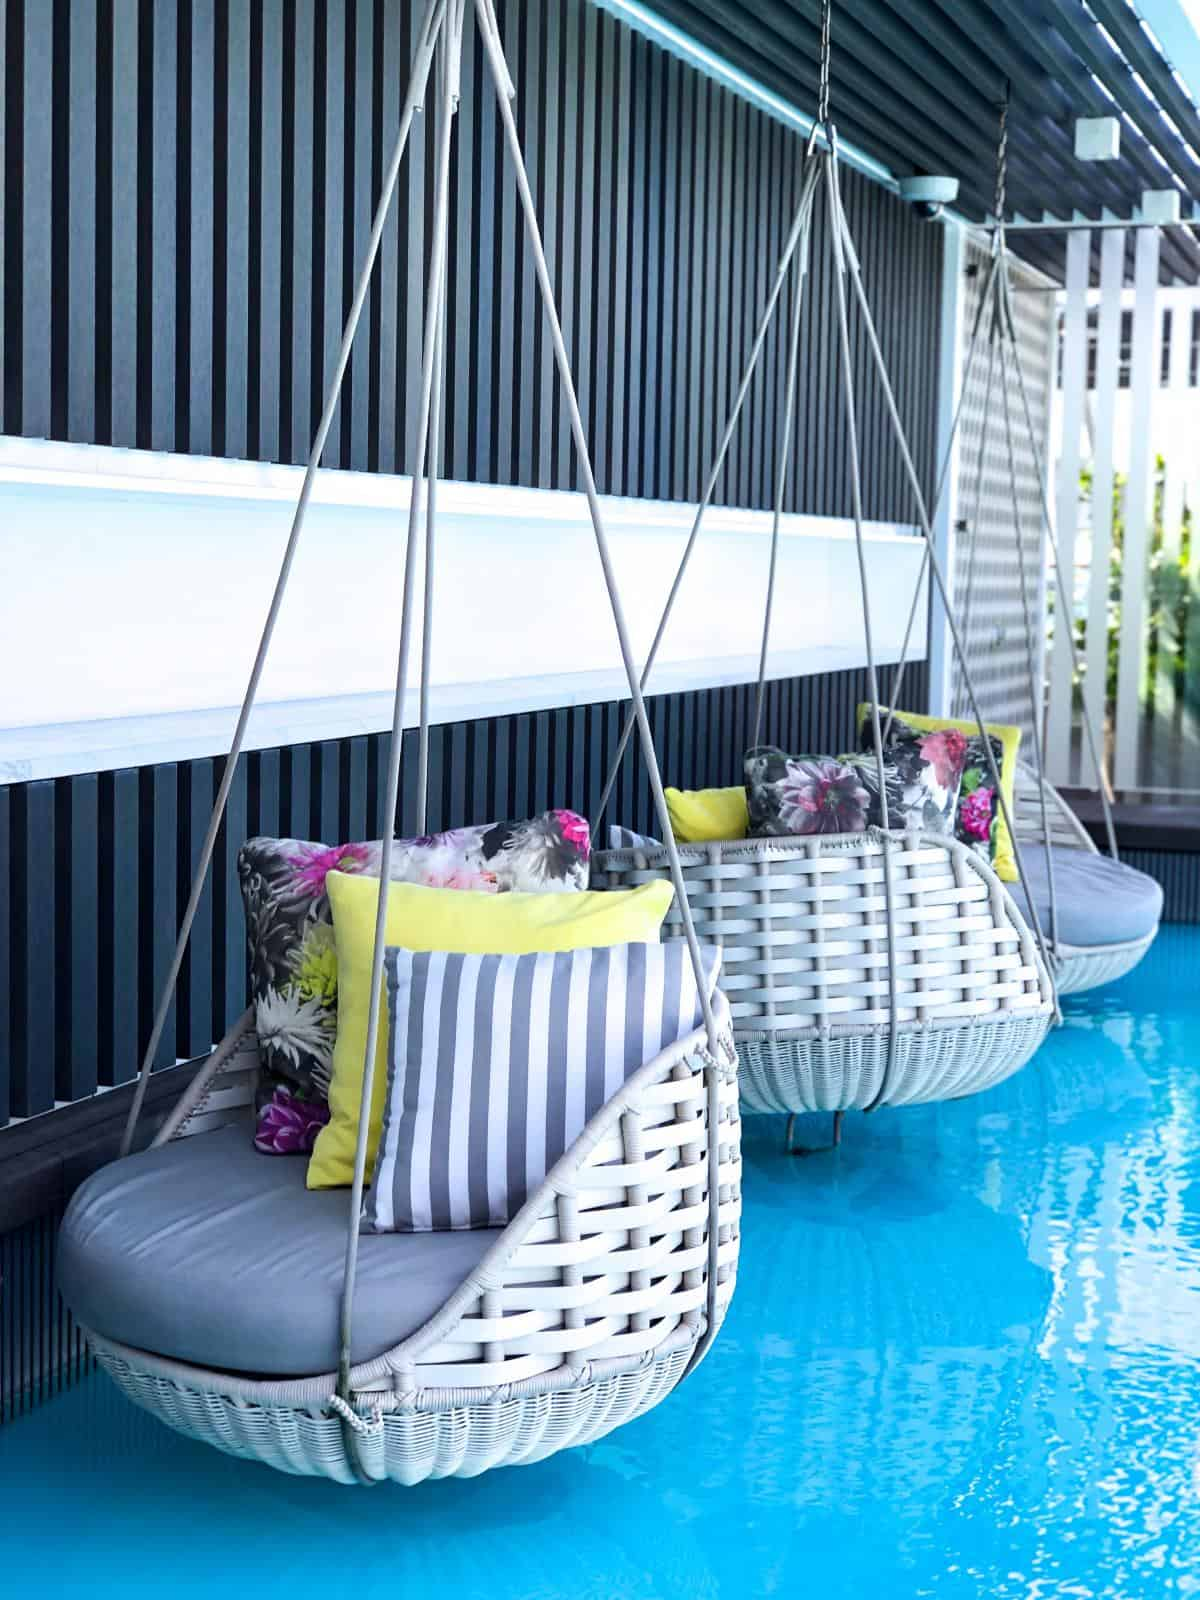 In The Retreat for suite passengers each guest will have a private pool and bar lounge. A personal butler service is also offered in this stunning area. With interiors designed by Kelly Hoppen the retreat really is an eye opener.